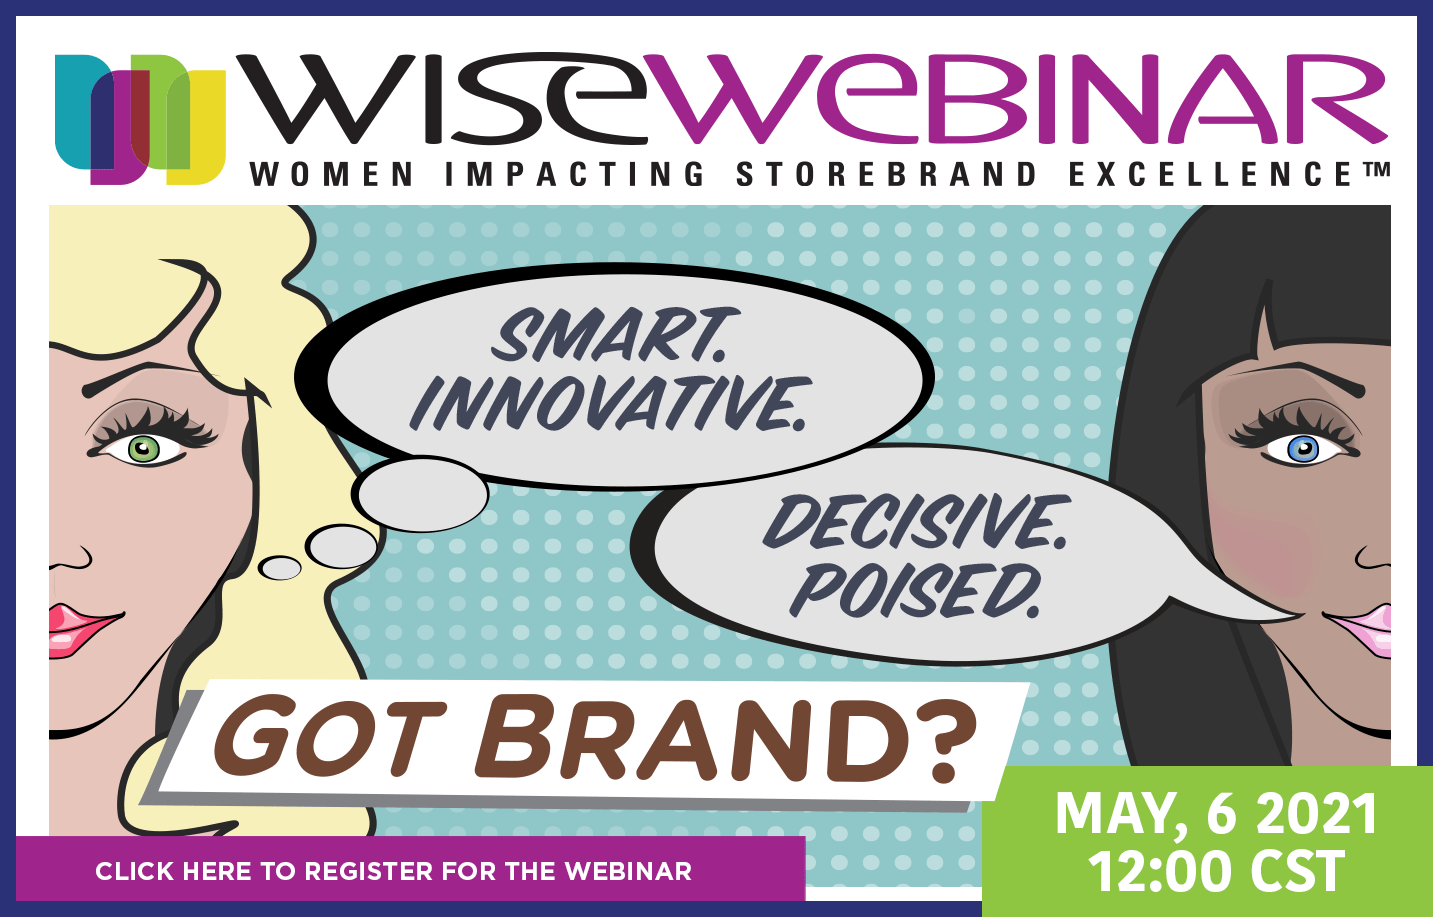 WISE-217 Got Brand Webinar Graphic 1433x917